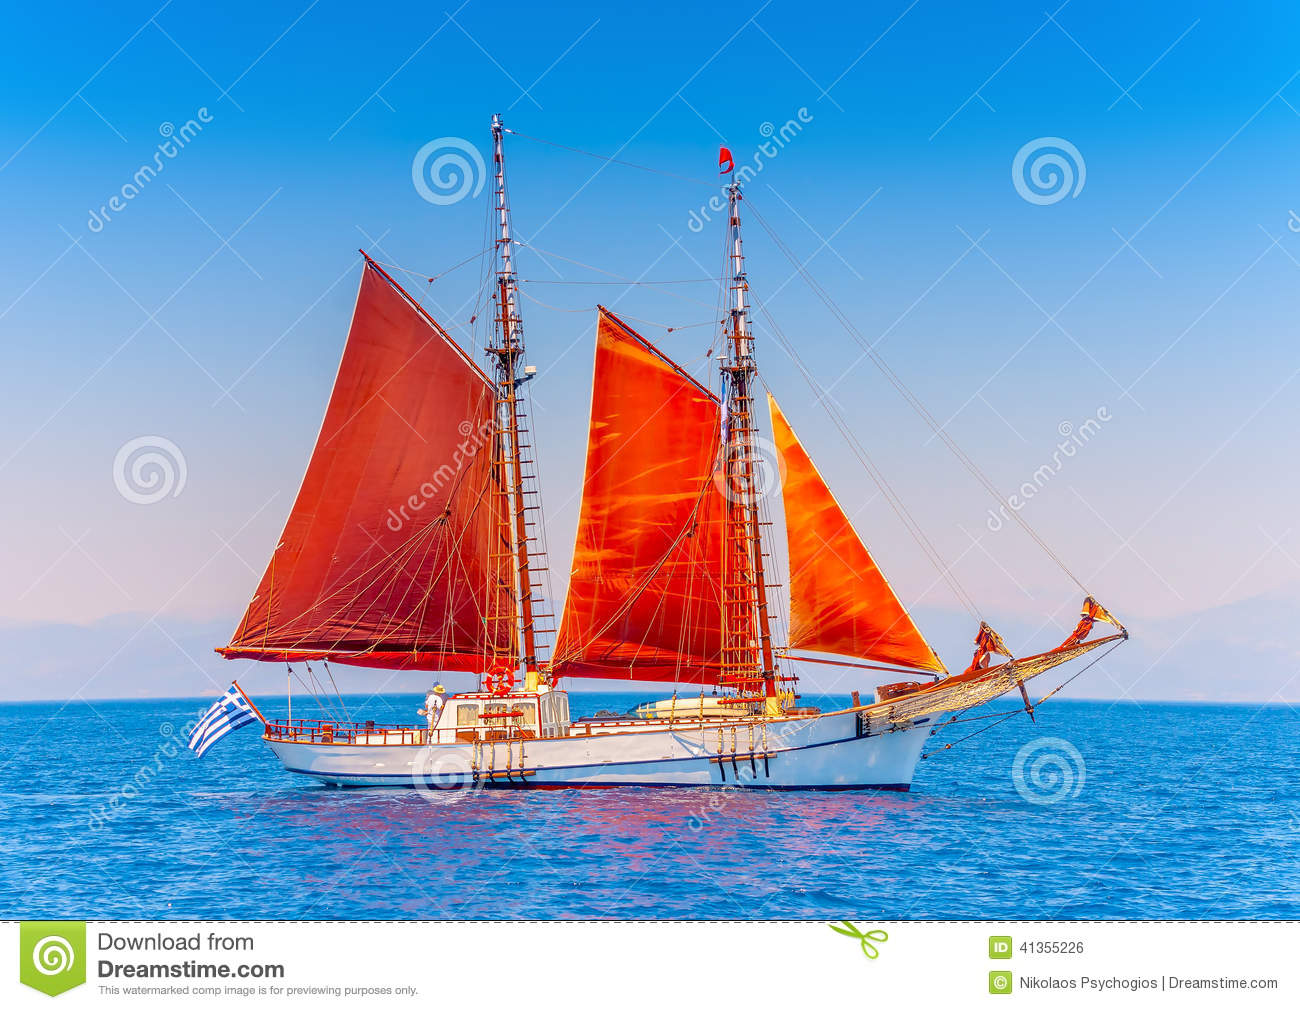 Classic Wooden Sailing Boat Stock Photo - Image: 41355226